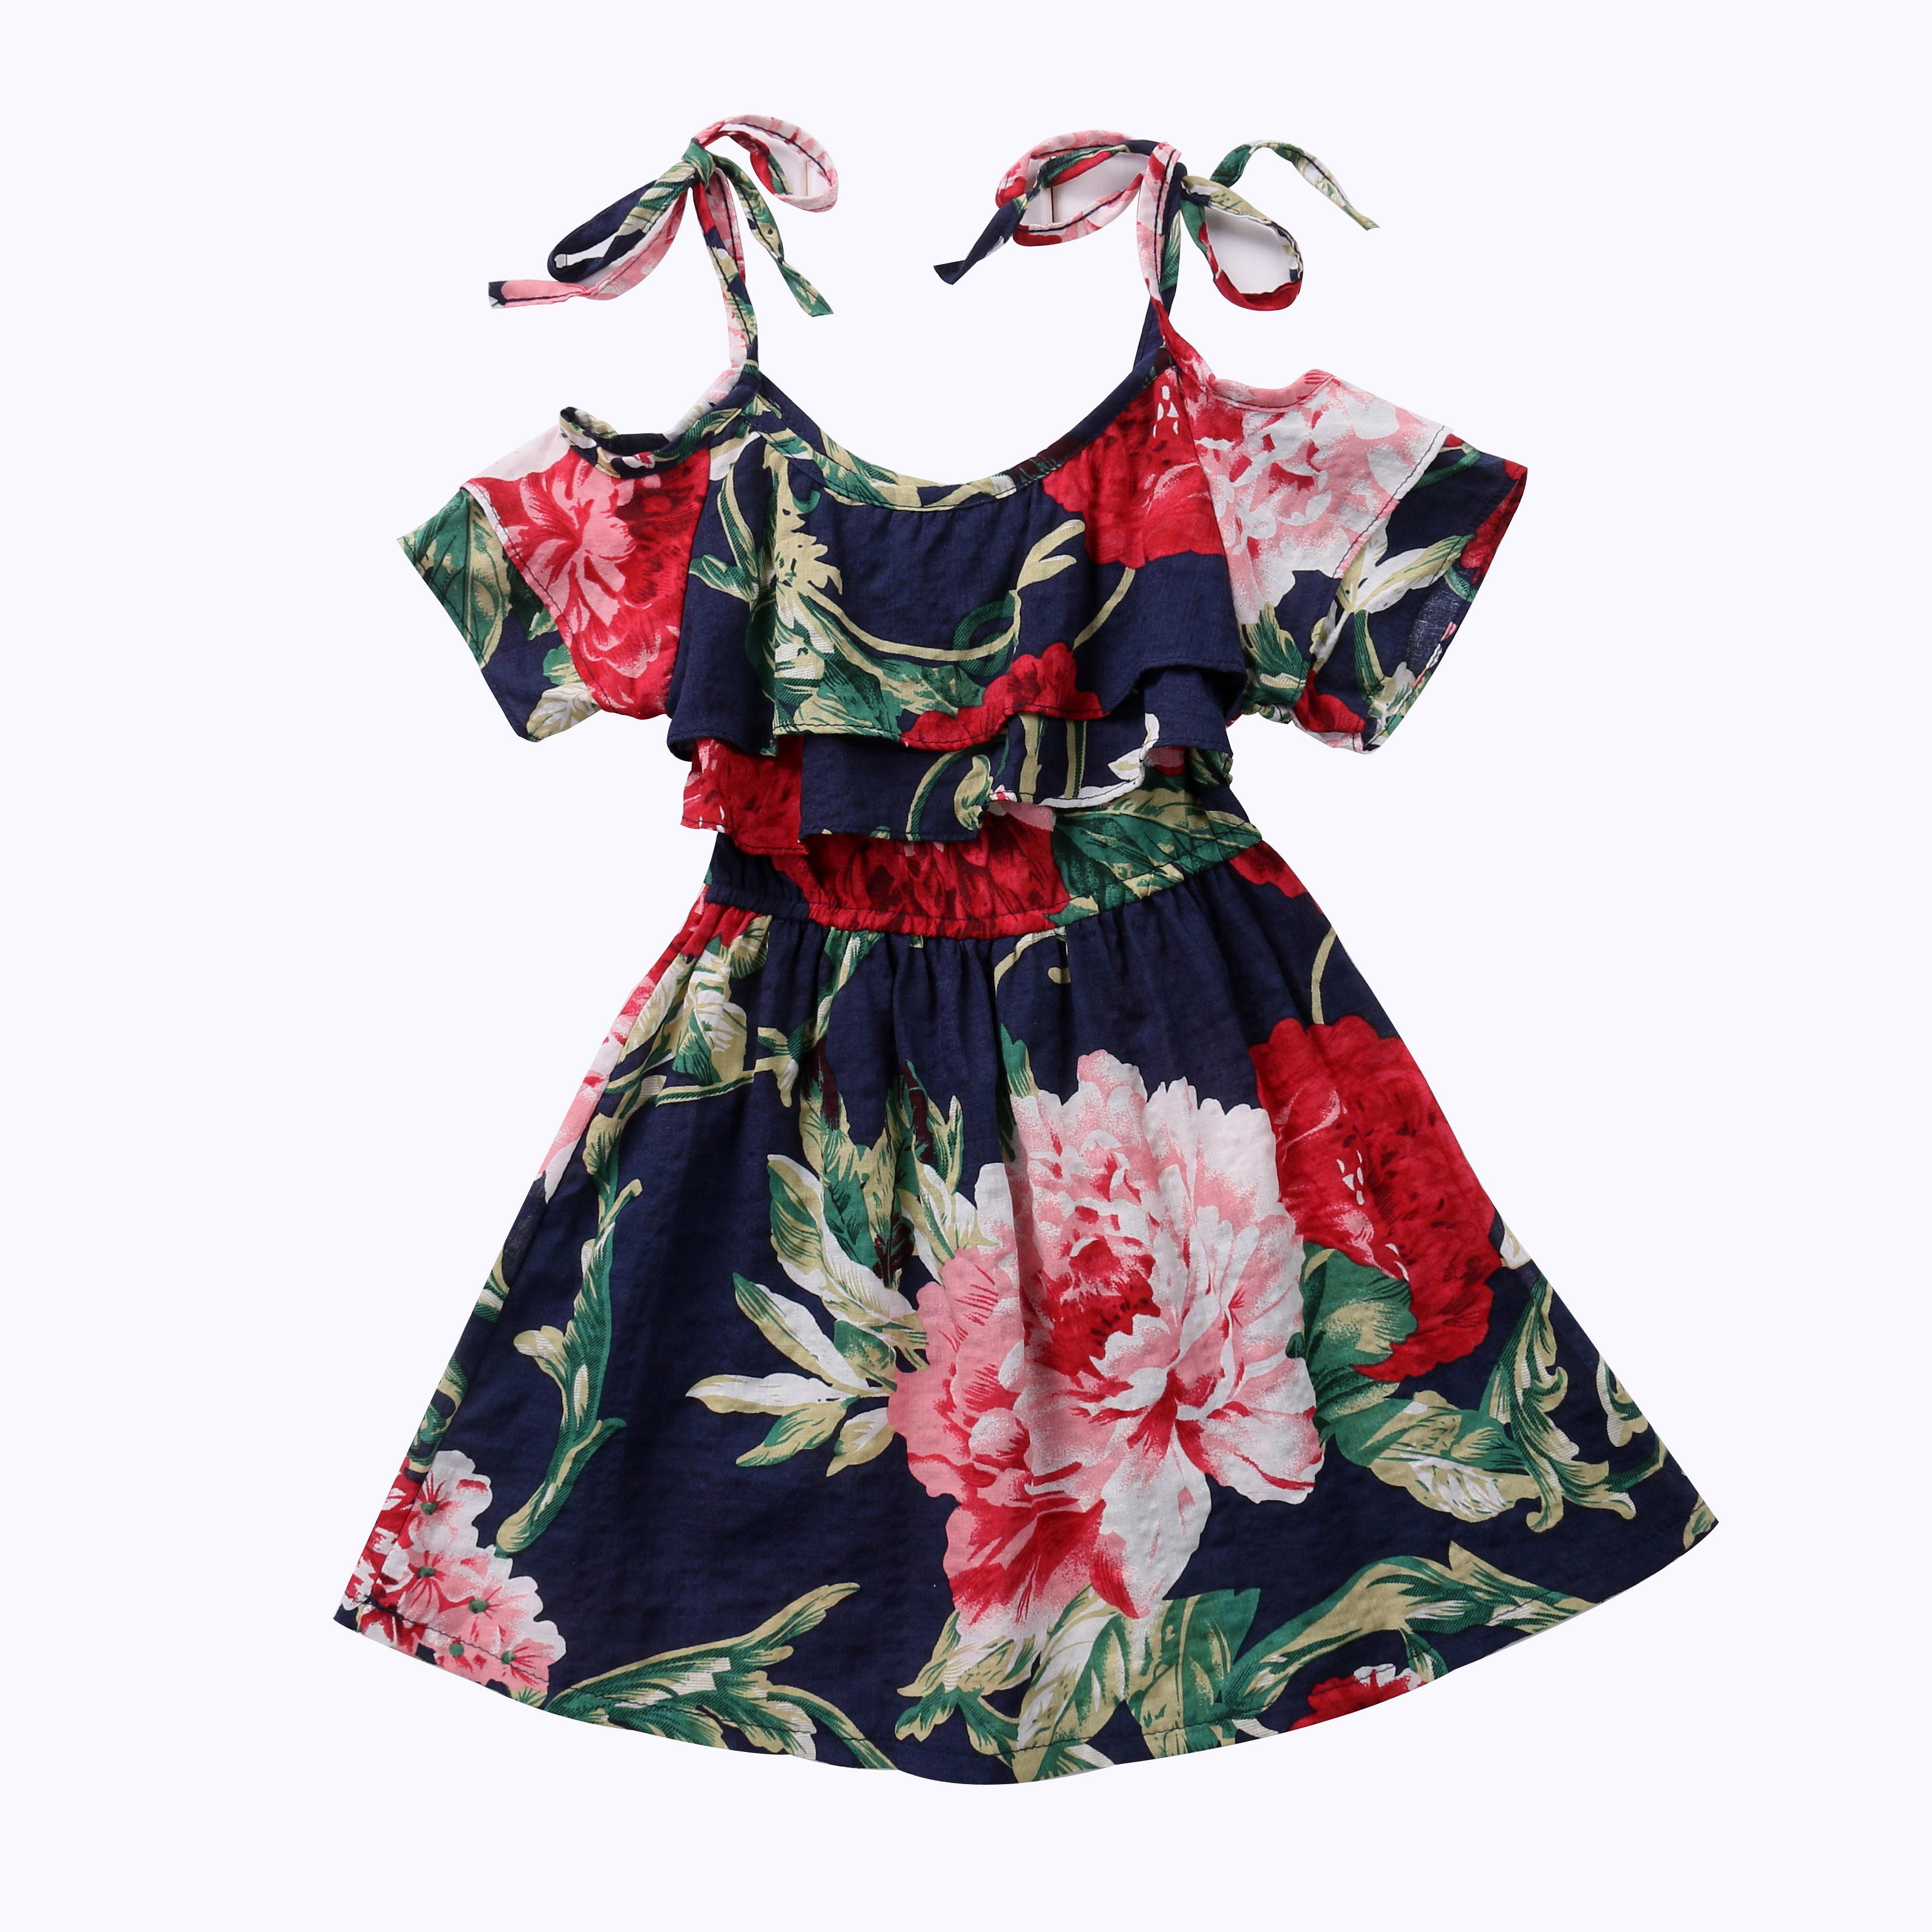 Baby Girls Clothes Flower Off Shoulder Halter Dress Kids Floral Summer Party Dresses Clothing 2-7 Year